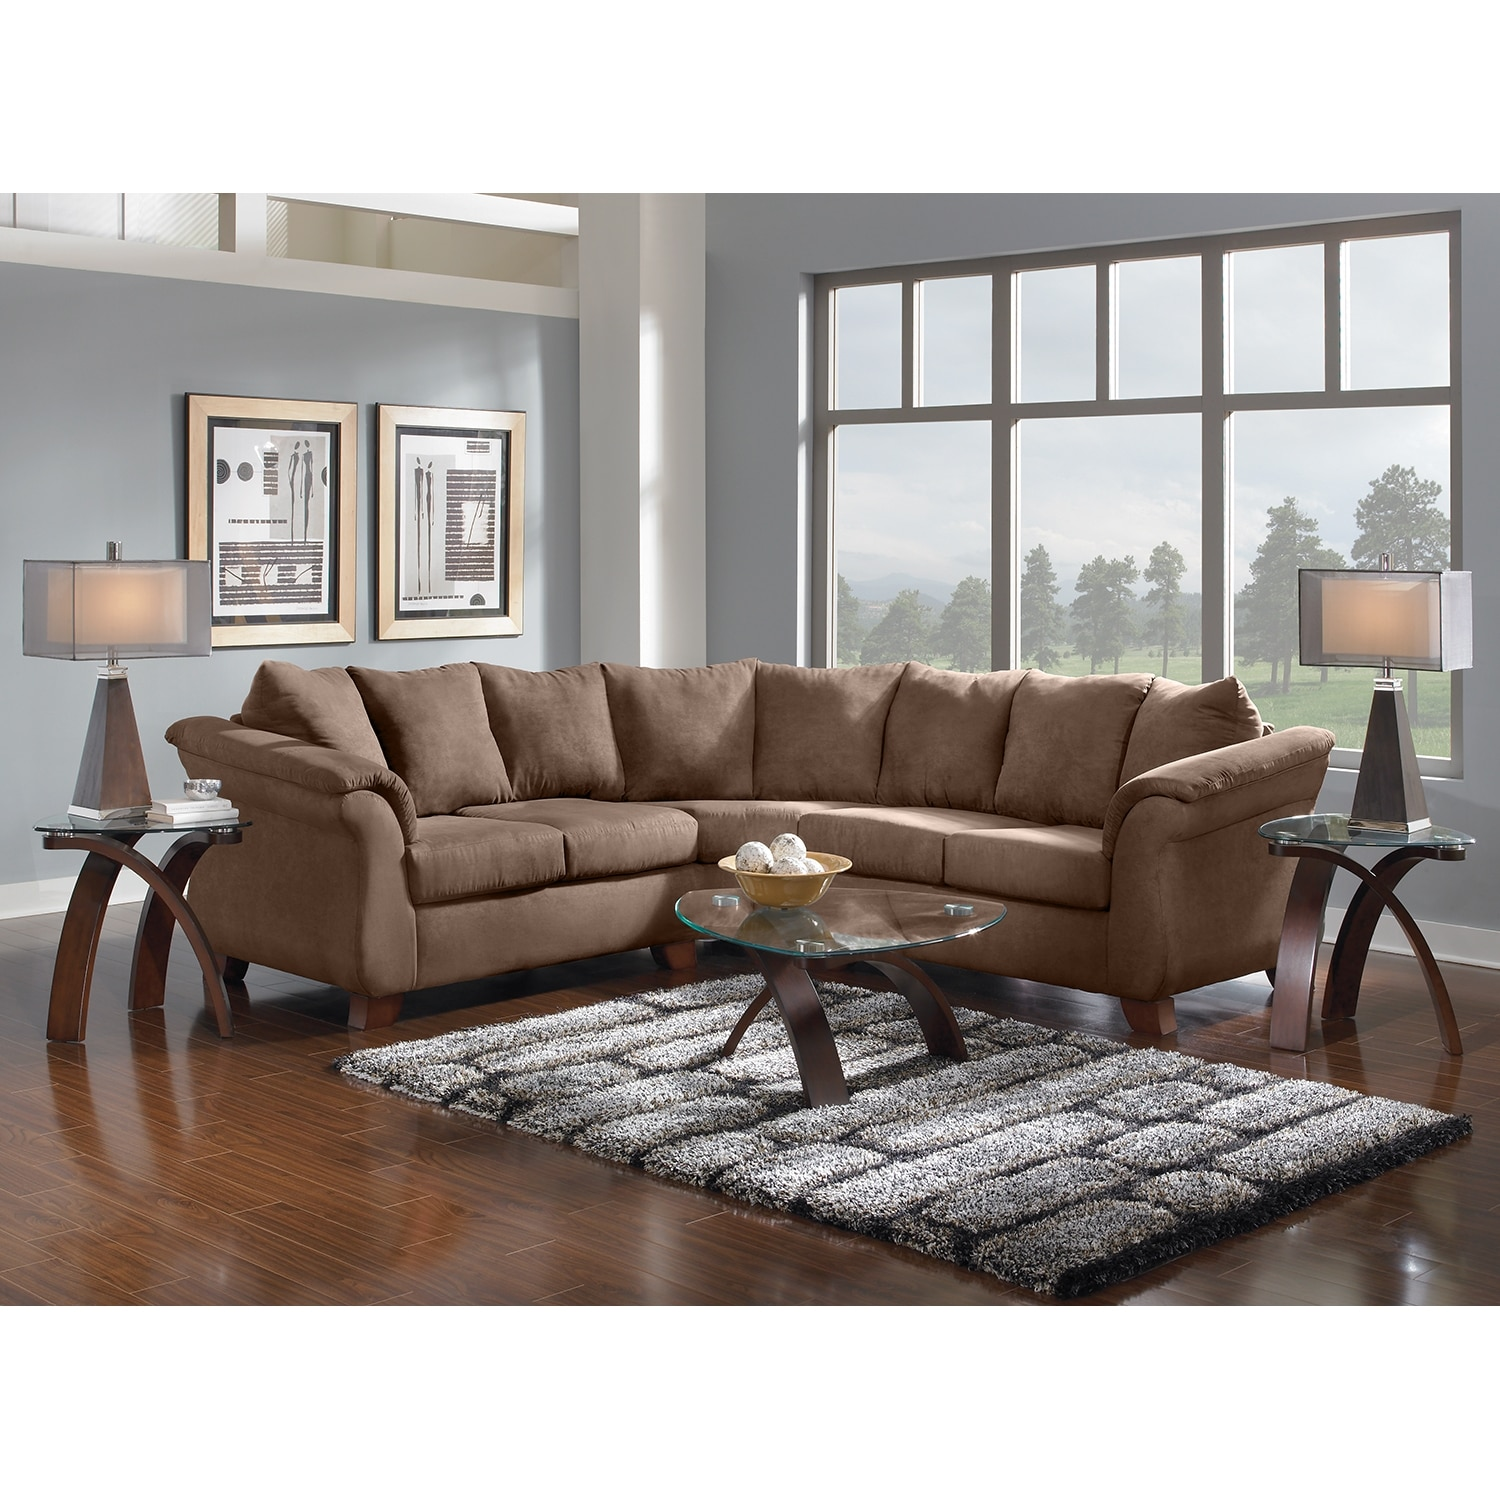 Adrian 2 piece sectional taupe value city furniture for Sofa and 2 chairs living room